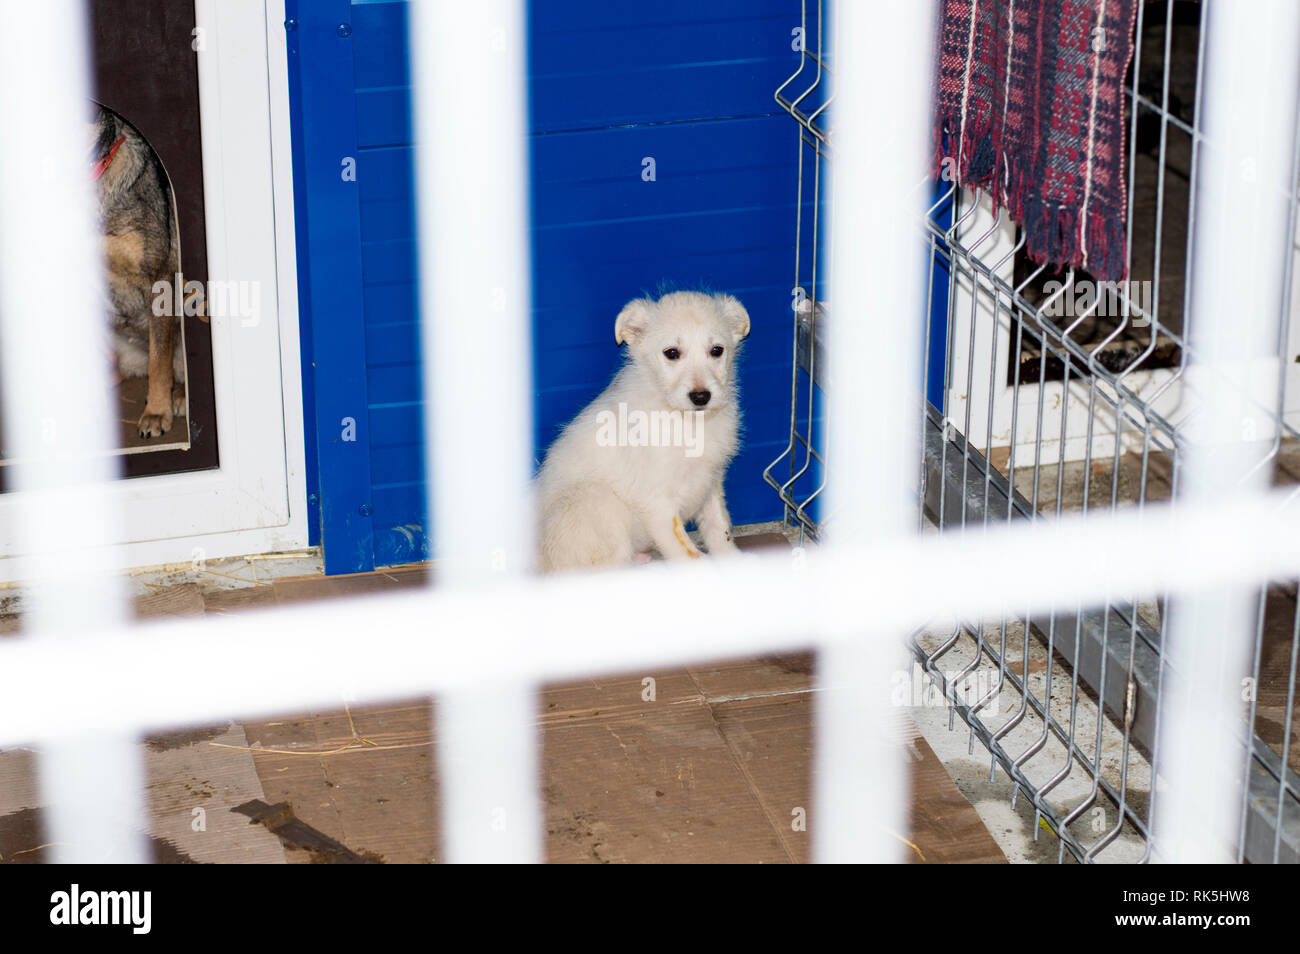 white beautiful puppy in shelter, charity and mercy theme, animal shelter, dog rescue, volunteer work - Stock Image